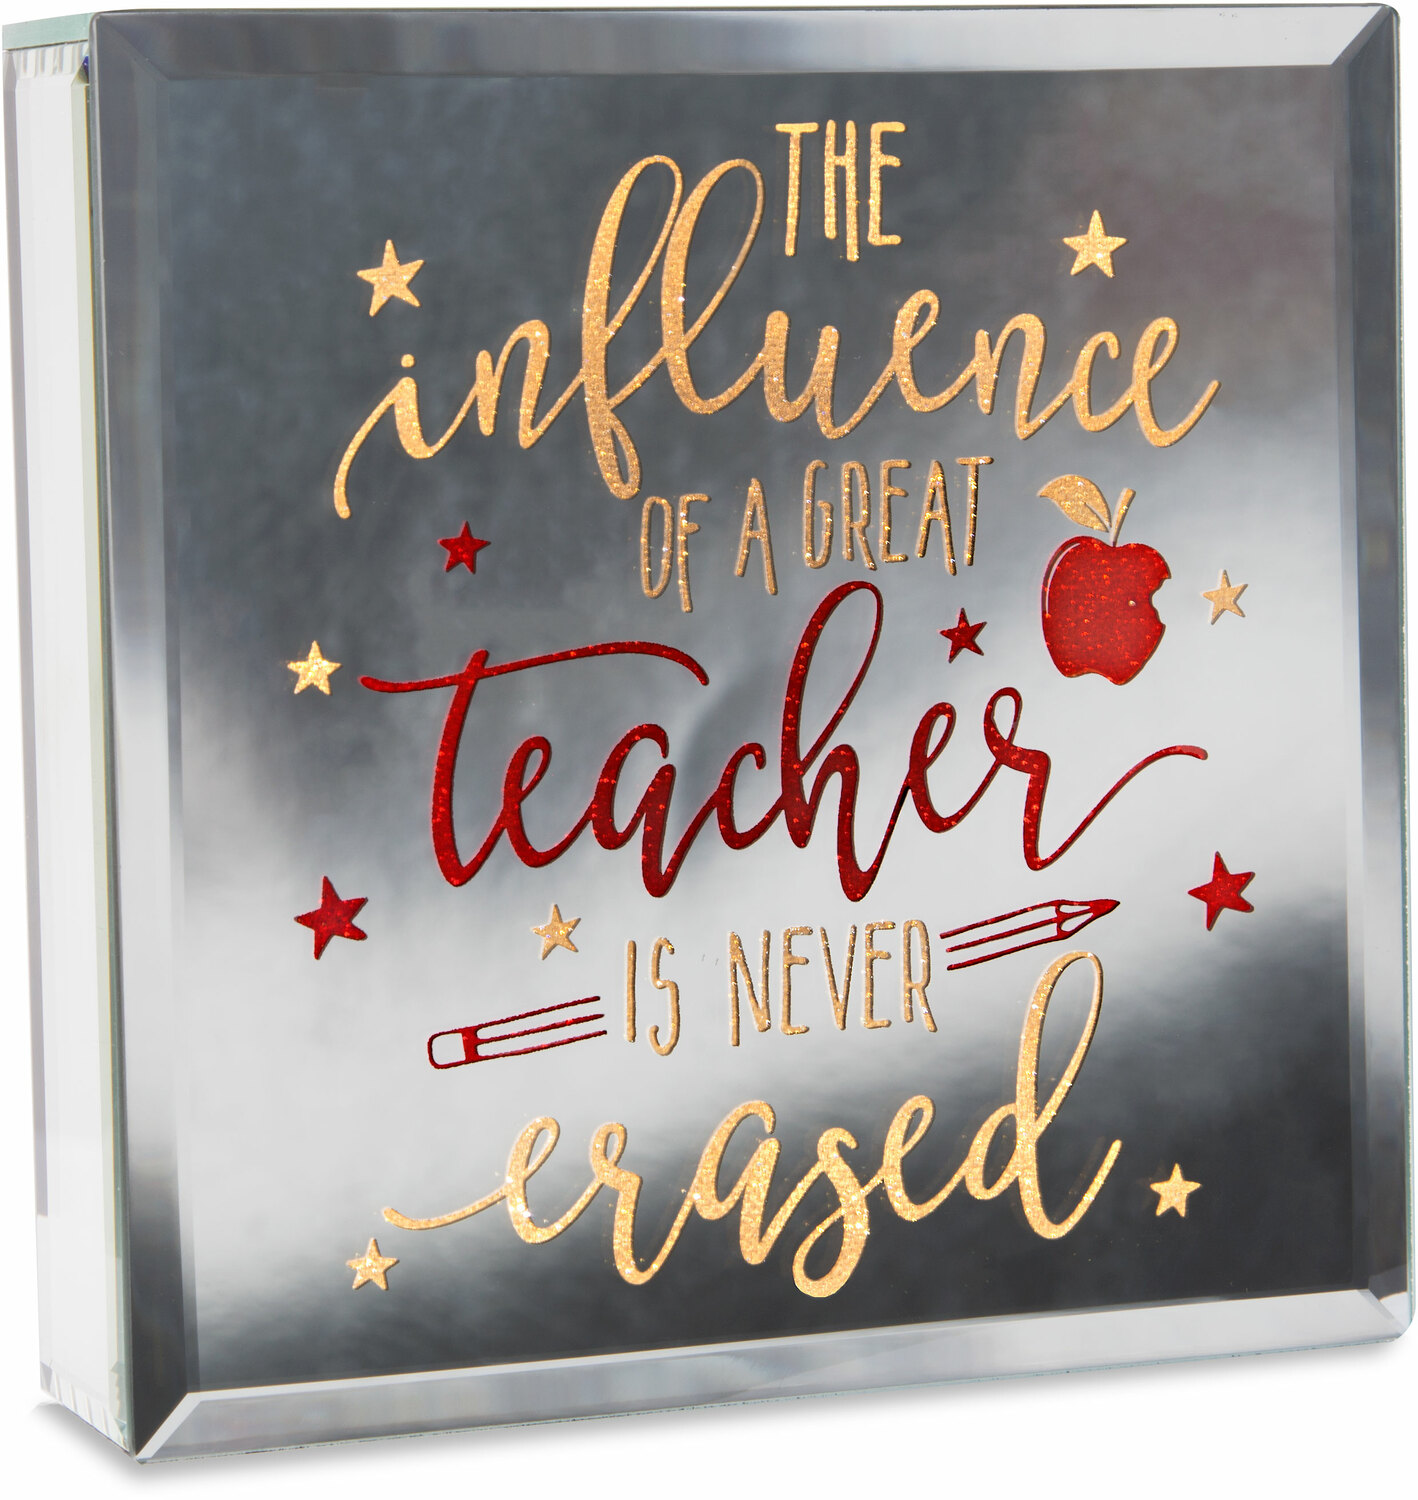 "Teacher by Reflections of You - Teacher - 6"" Lit-Mirrored Plaque"